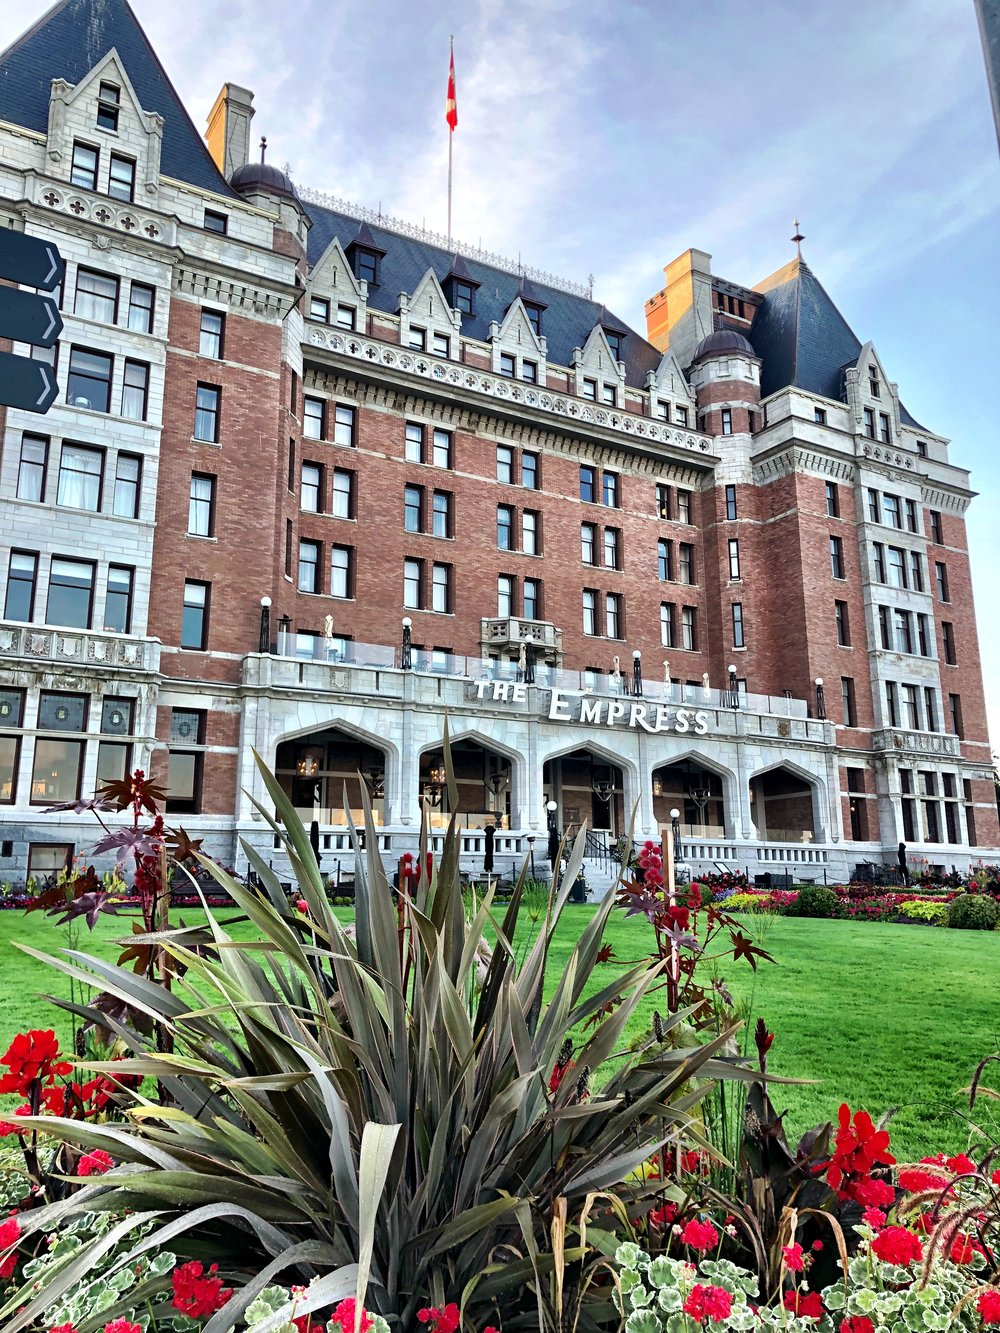 The Fairmont Empress Hotel in Victoria, BC